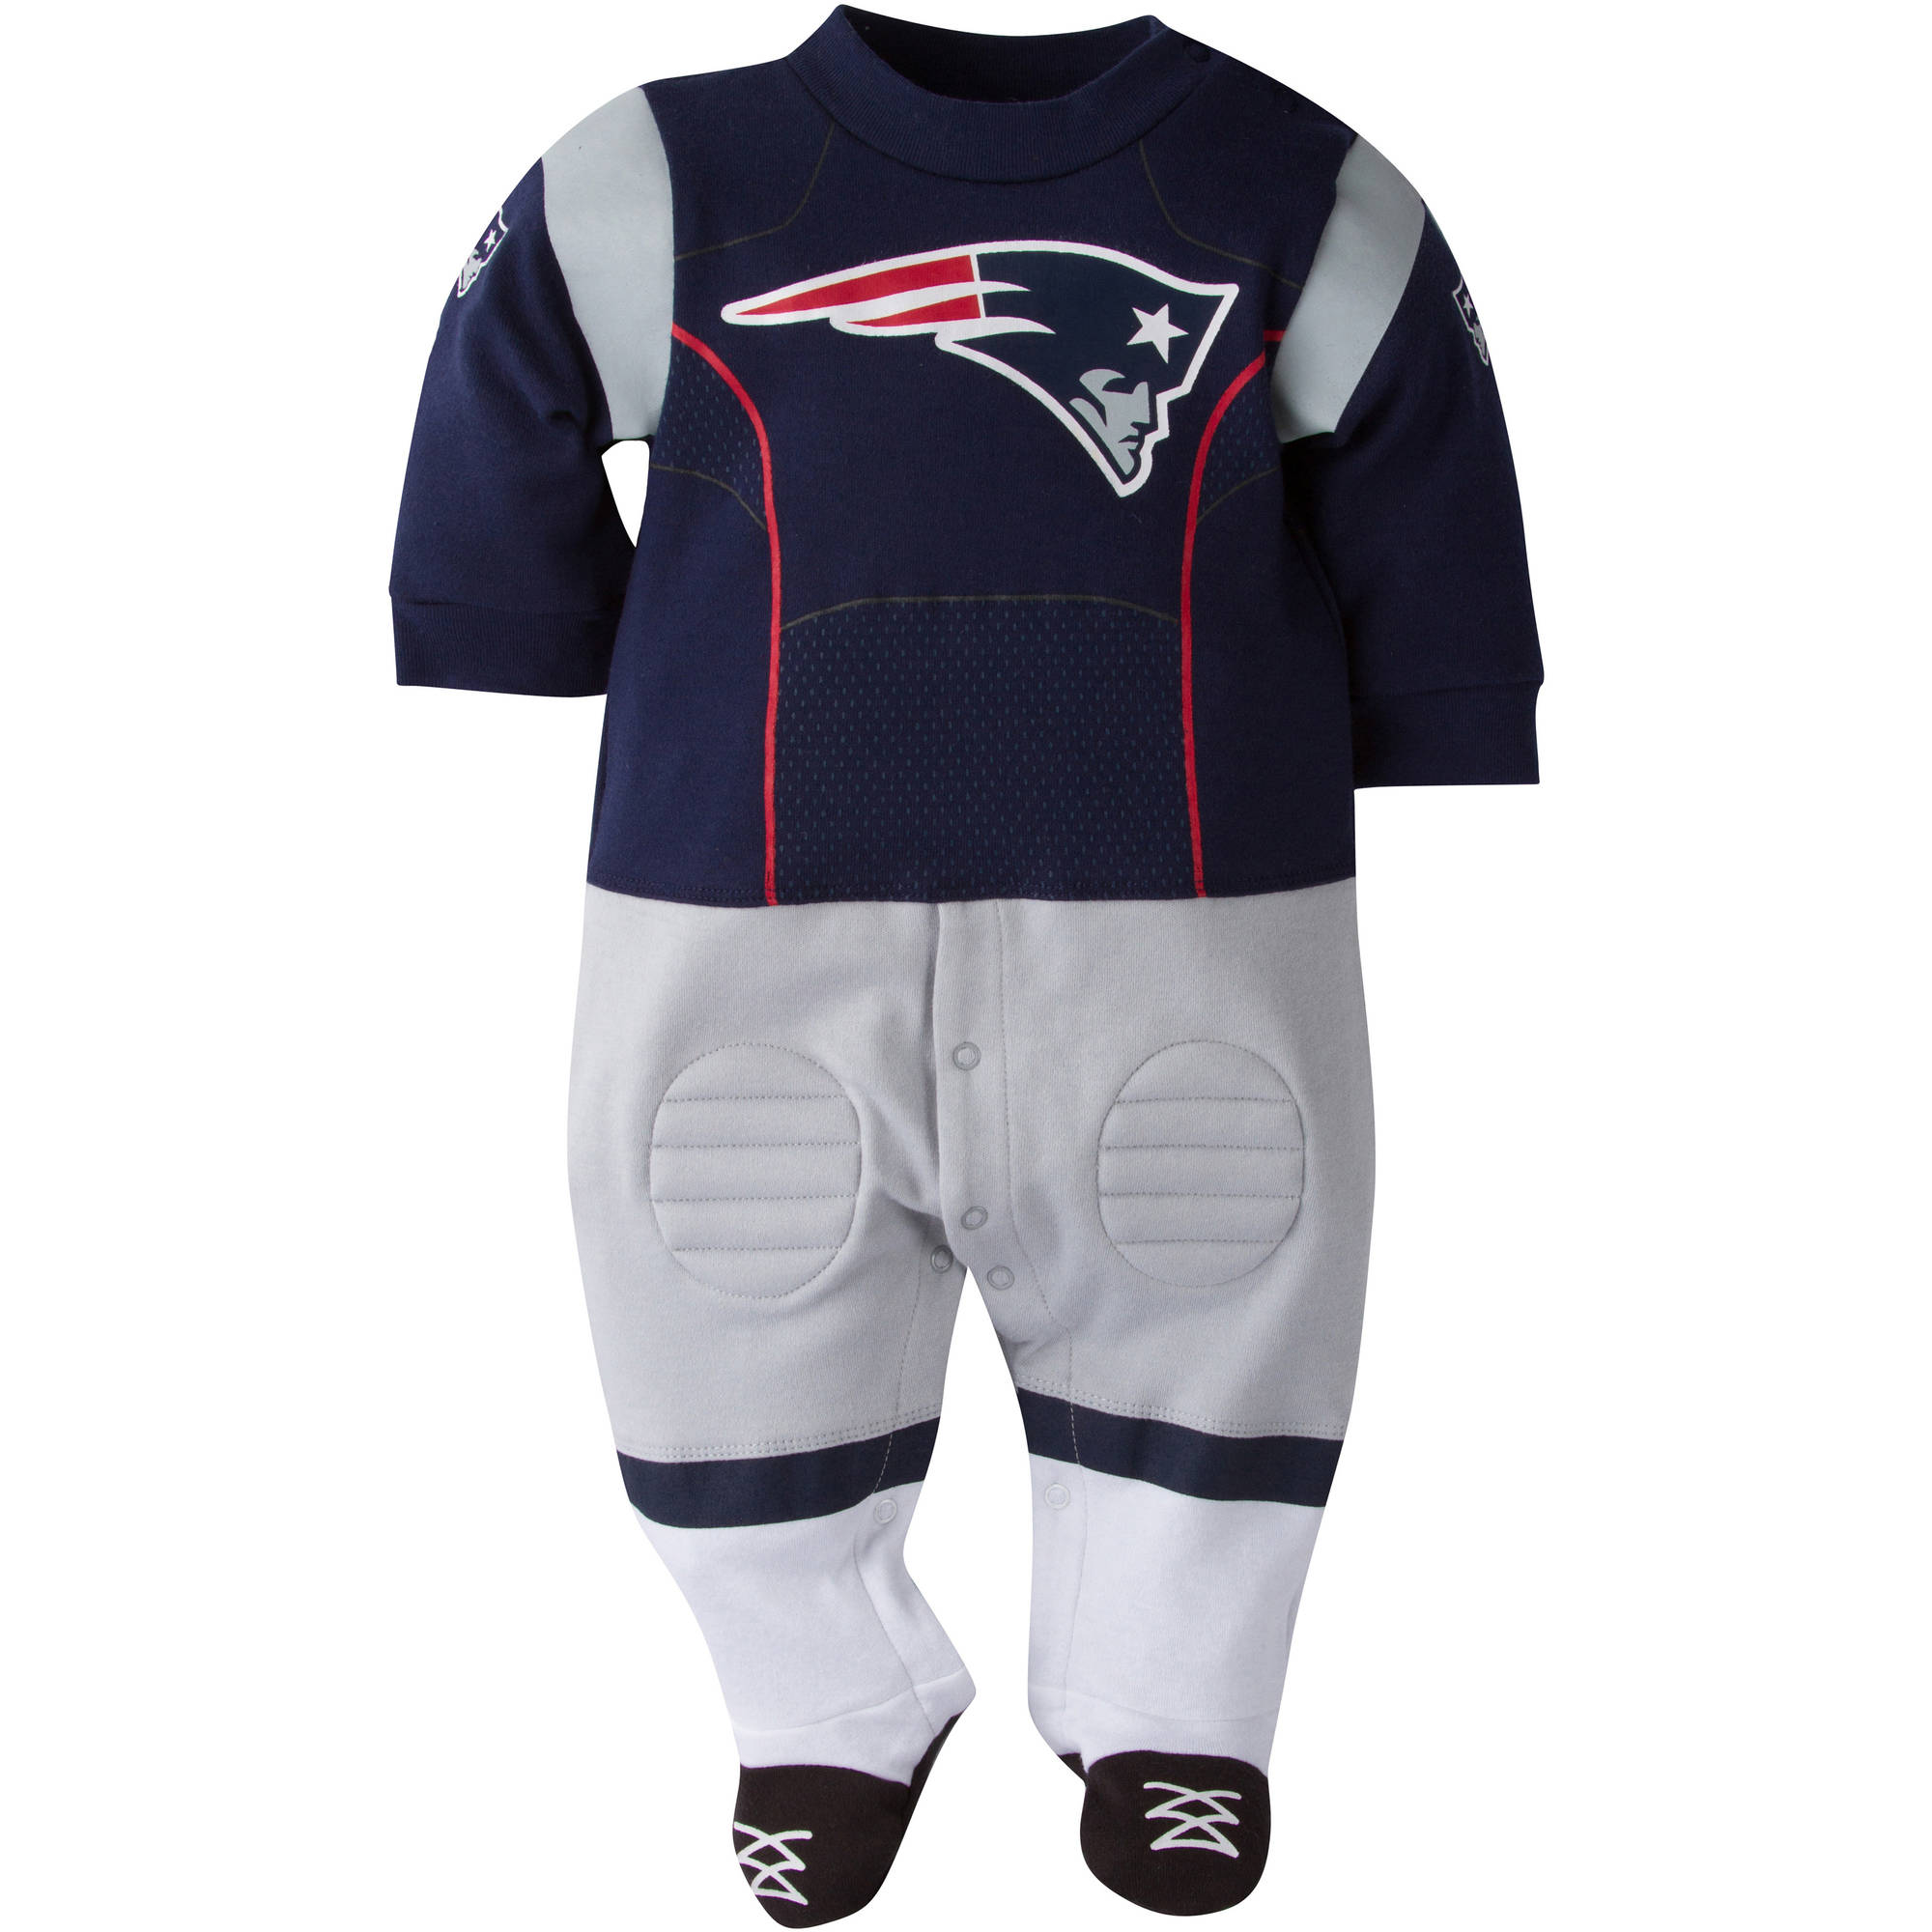 NFL New England Patriots Baby Boys Team Uniform Footysuit with Cleats